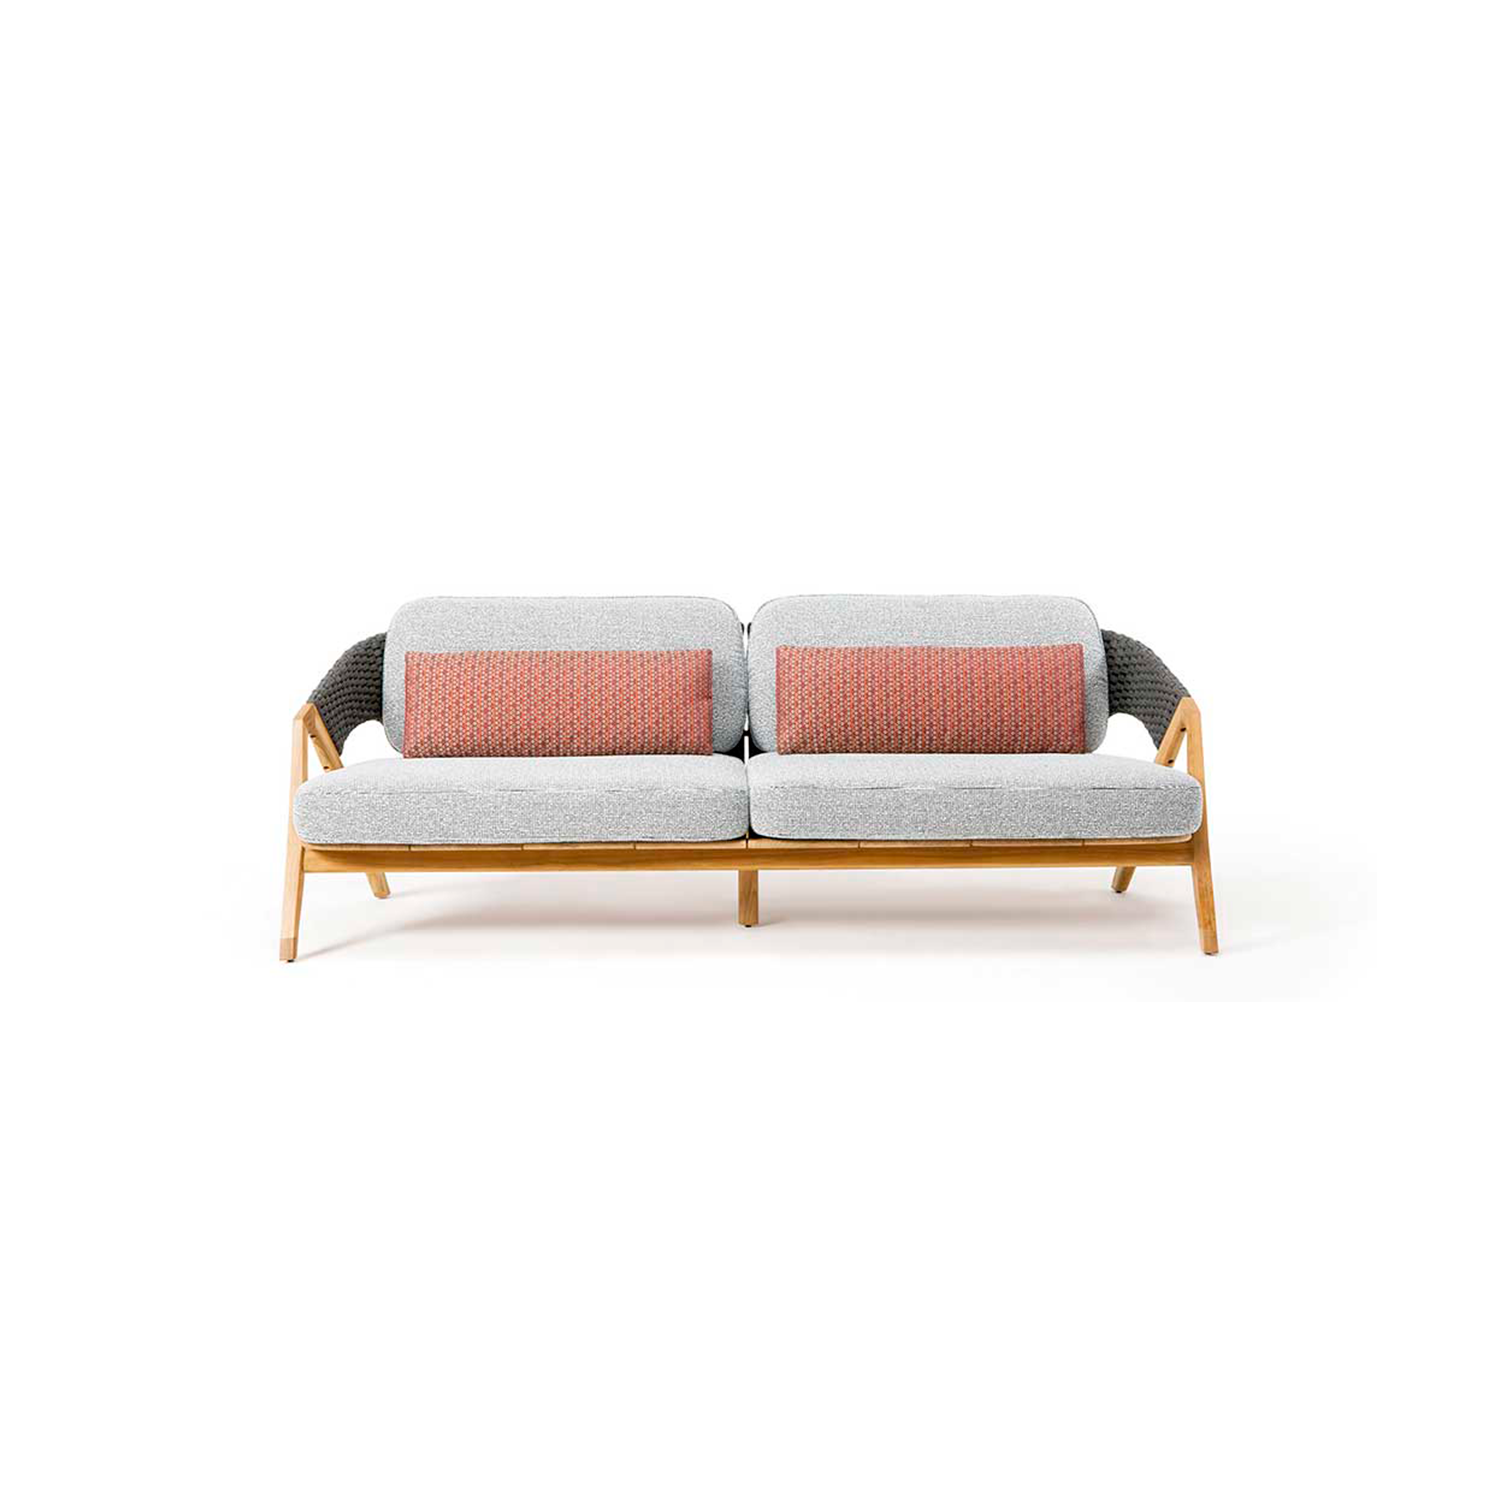 Knit 3 Seater Sofa - Knit is a complete line of tables, chairs and lounge chairs in teak and woven rope that expresses with refinement a perfect synthesis of aesthetics, functionality and ergonomics. The iconic collection is enriched by the new version in pickled teak and light gray rope and the rocking version of the lounge chair with high back, thus offering a new and special interpretation of the classic bergère.  Seat and back cushions available at extra cost. Please enquire for more information. | Matter of Stuff